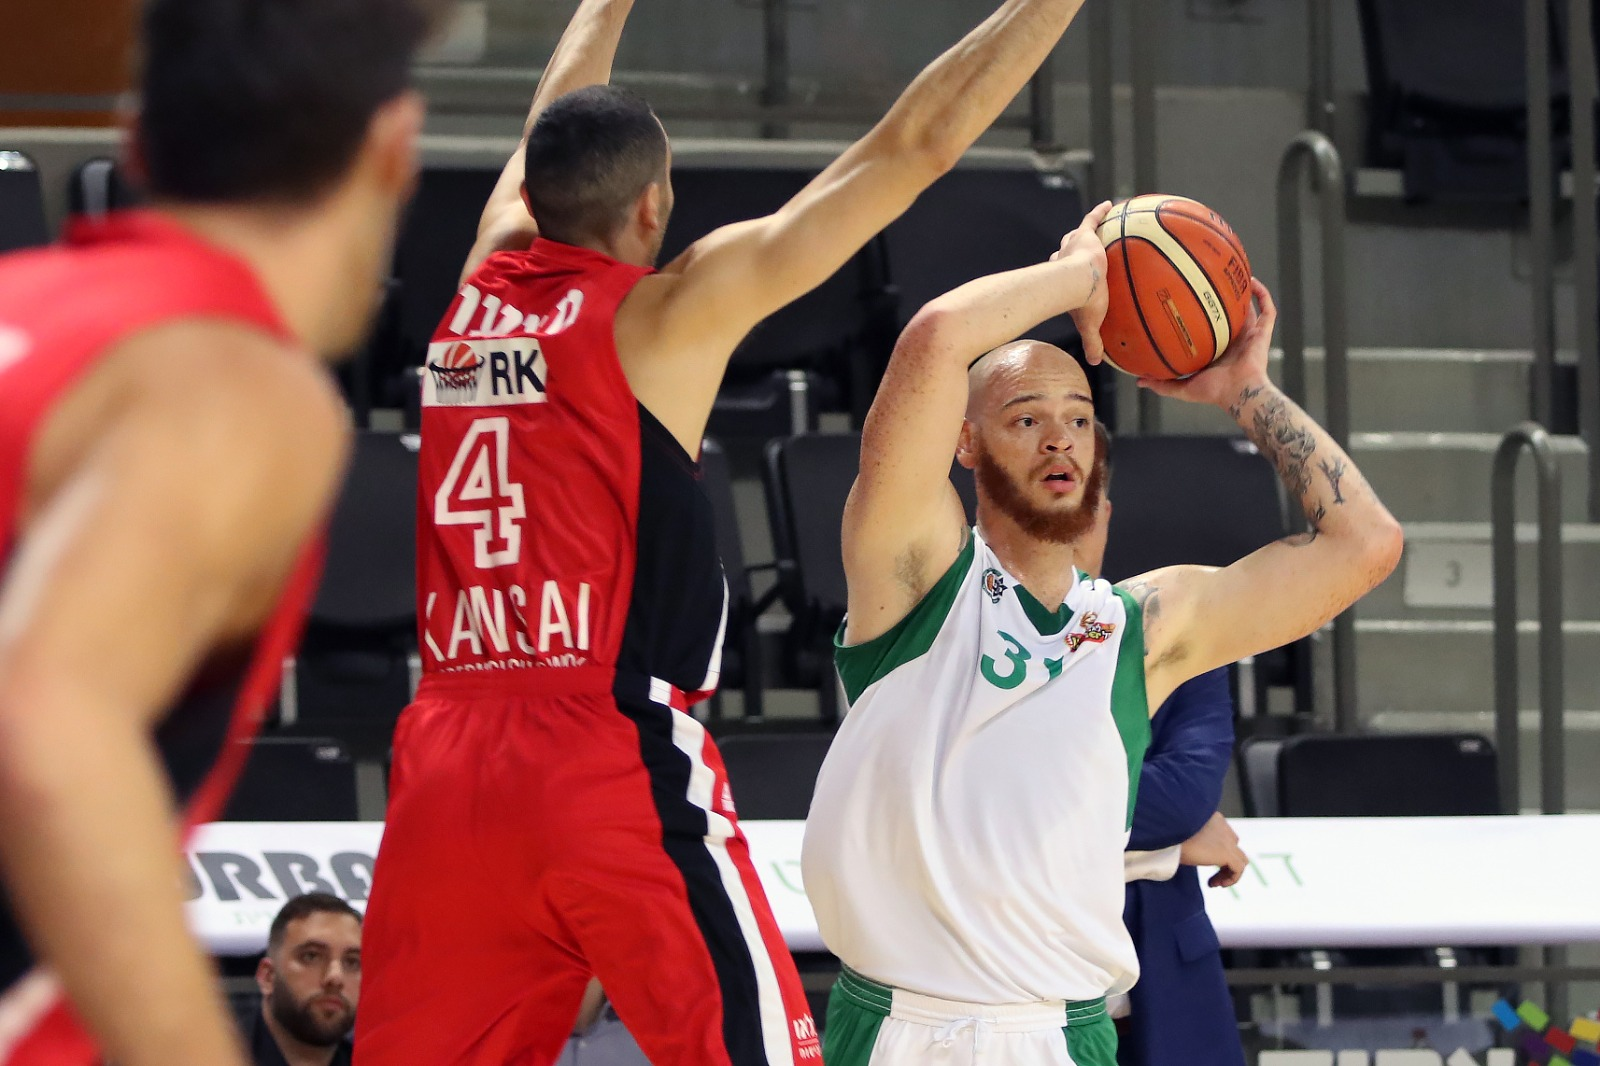 The Greens with a tough loss to Hapoel Tel Aviv